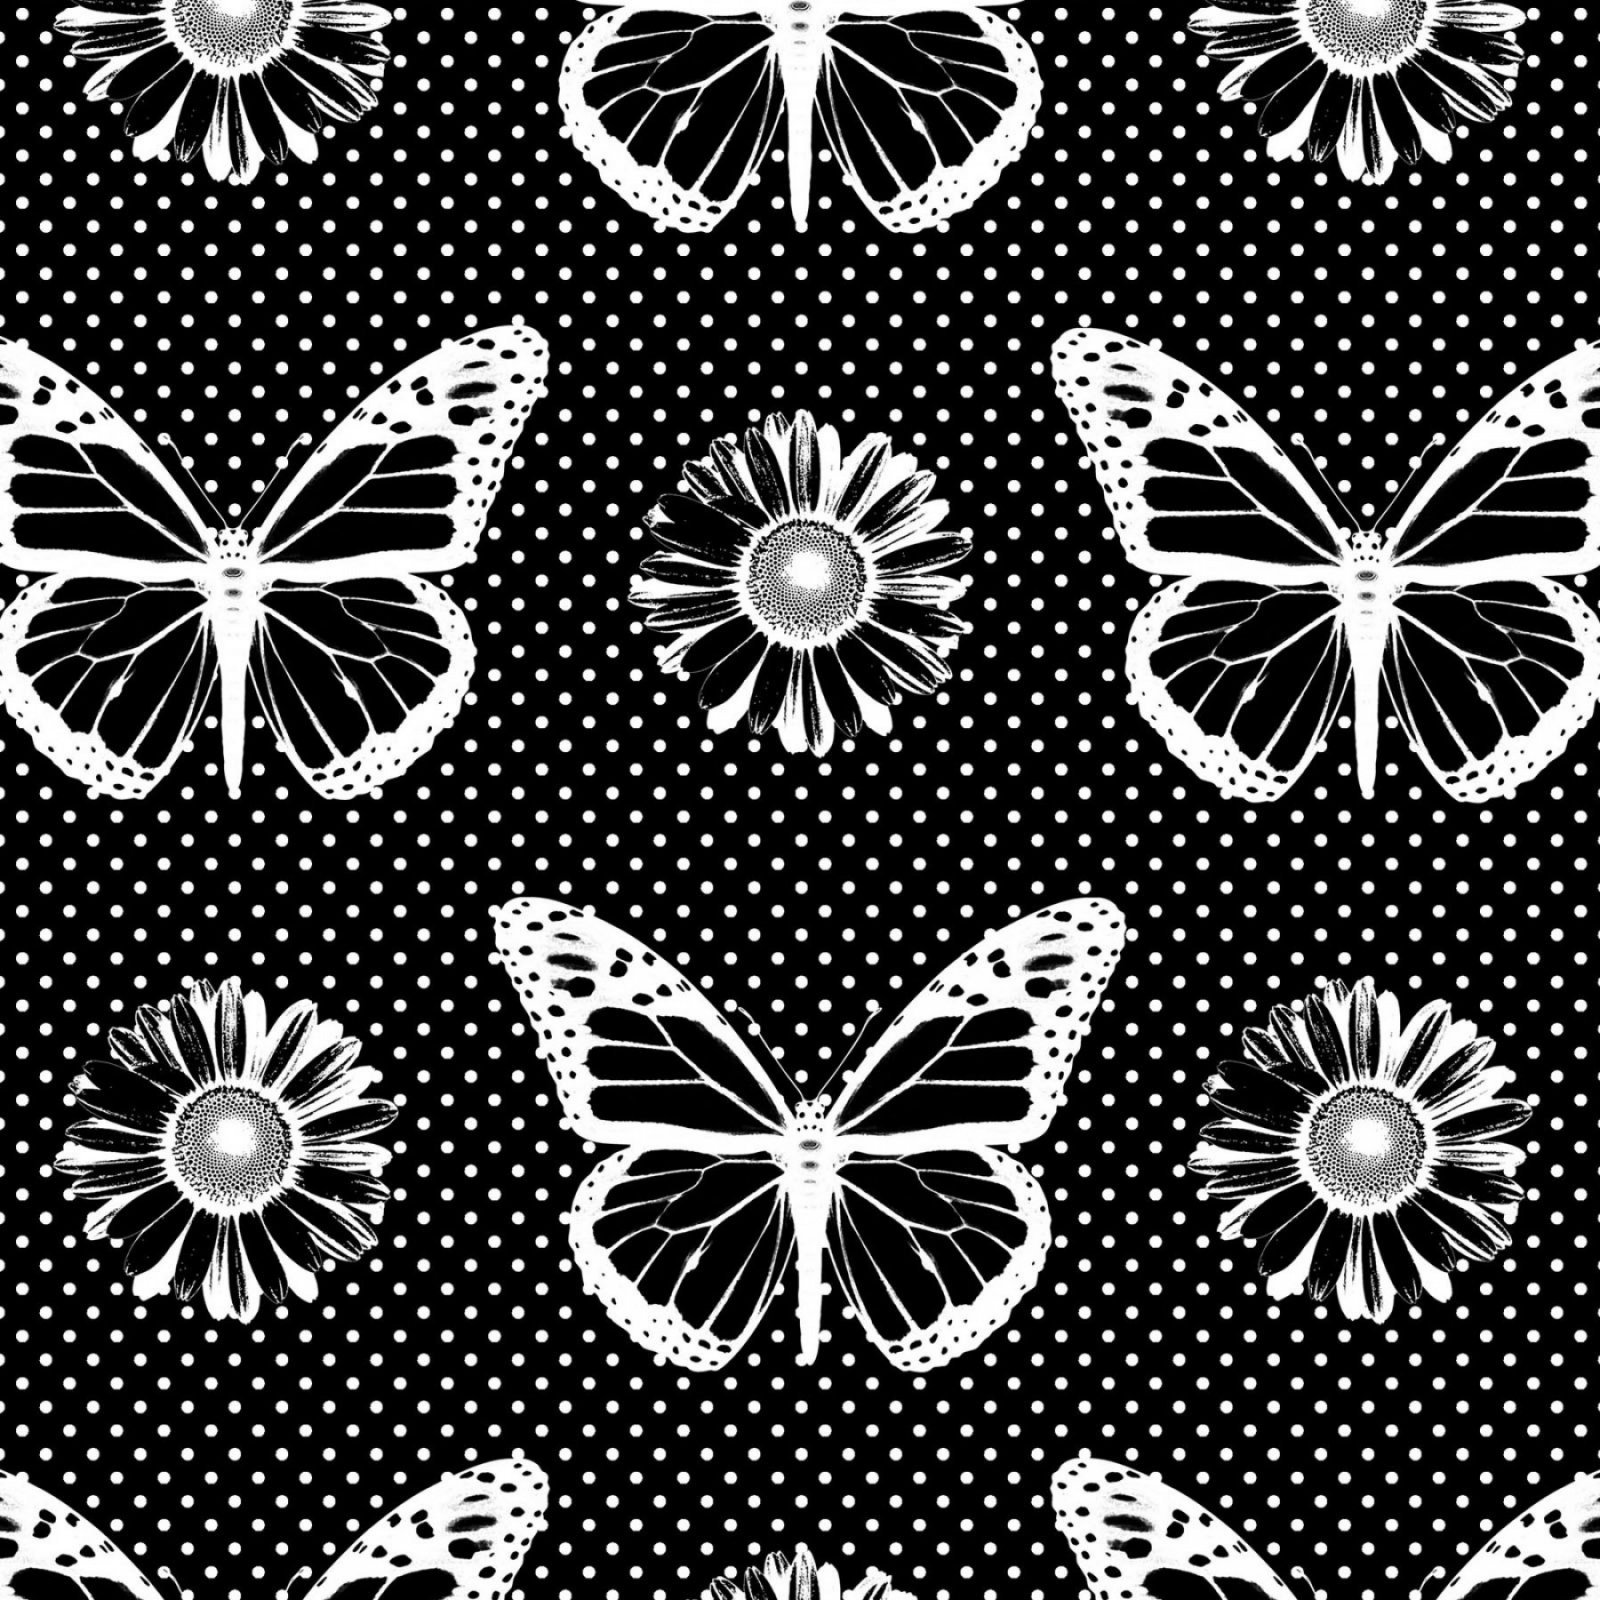 Patrick Lose-Black/White Favorites 64744 Black Butterflies